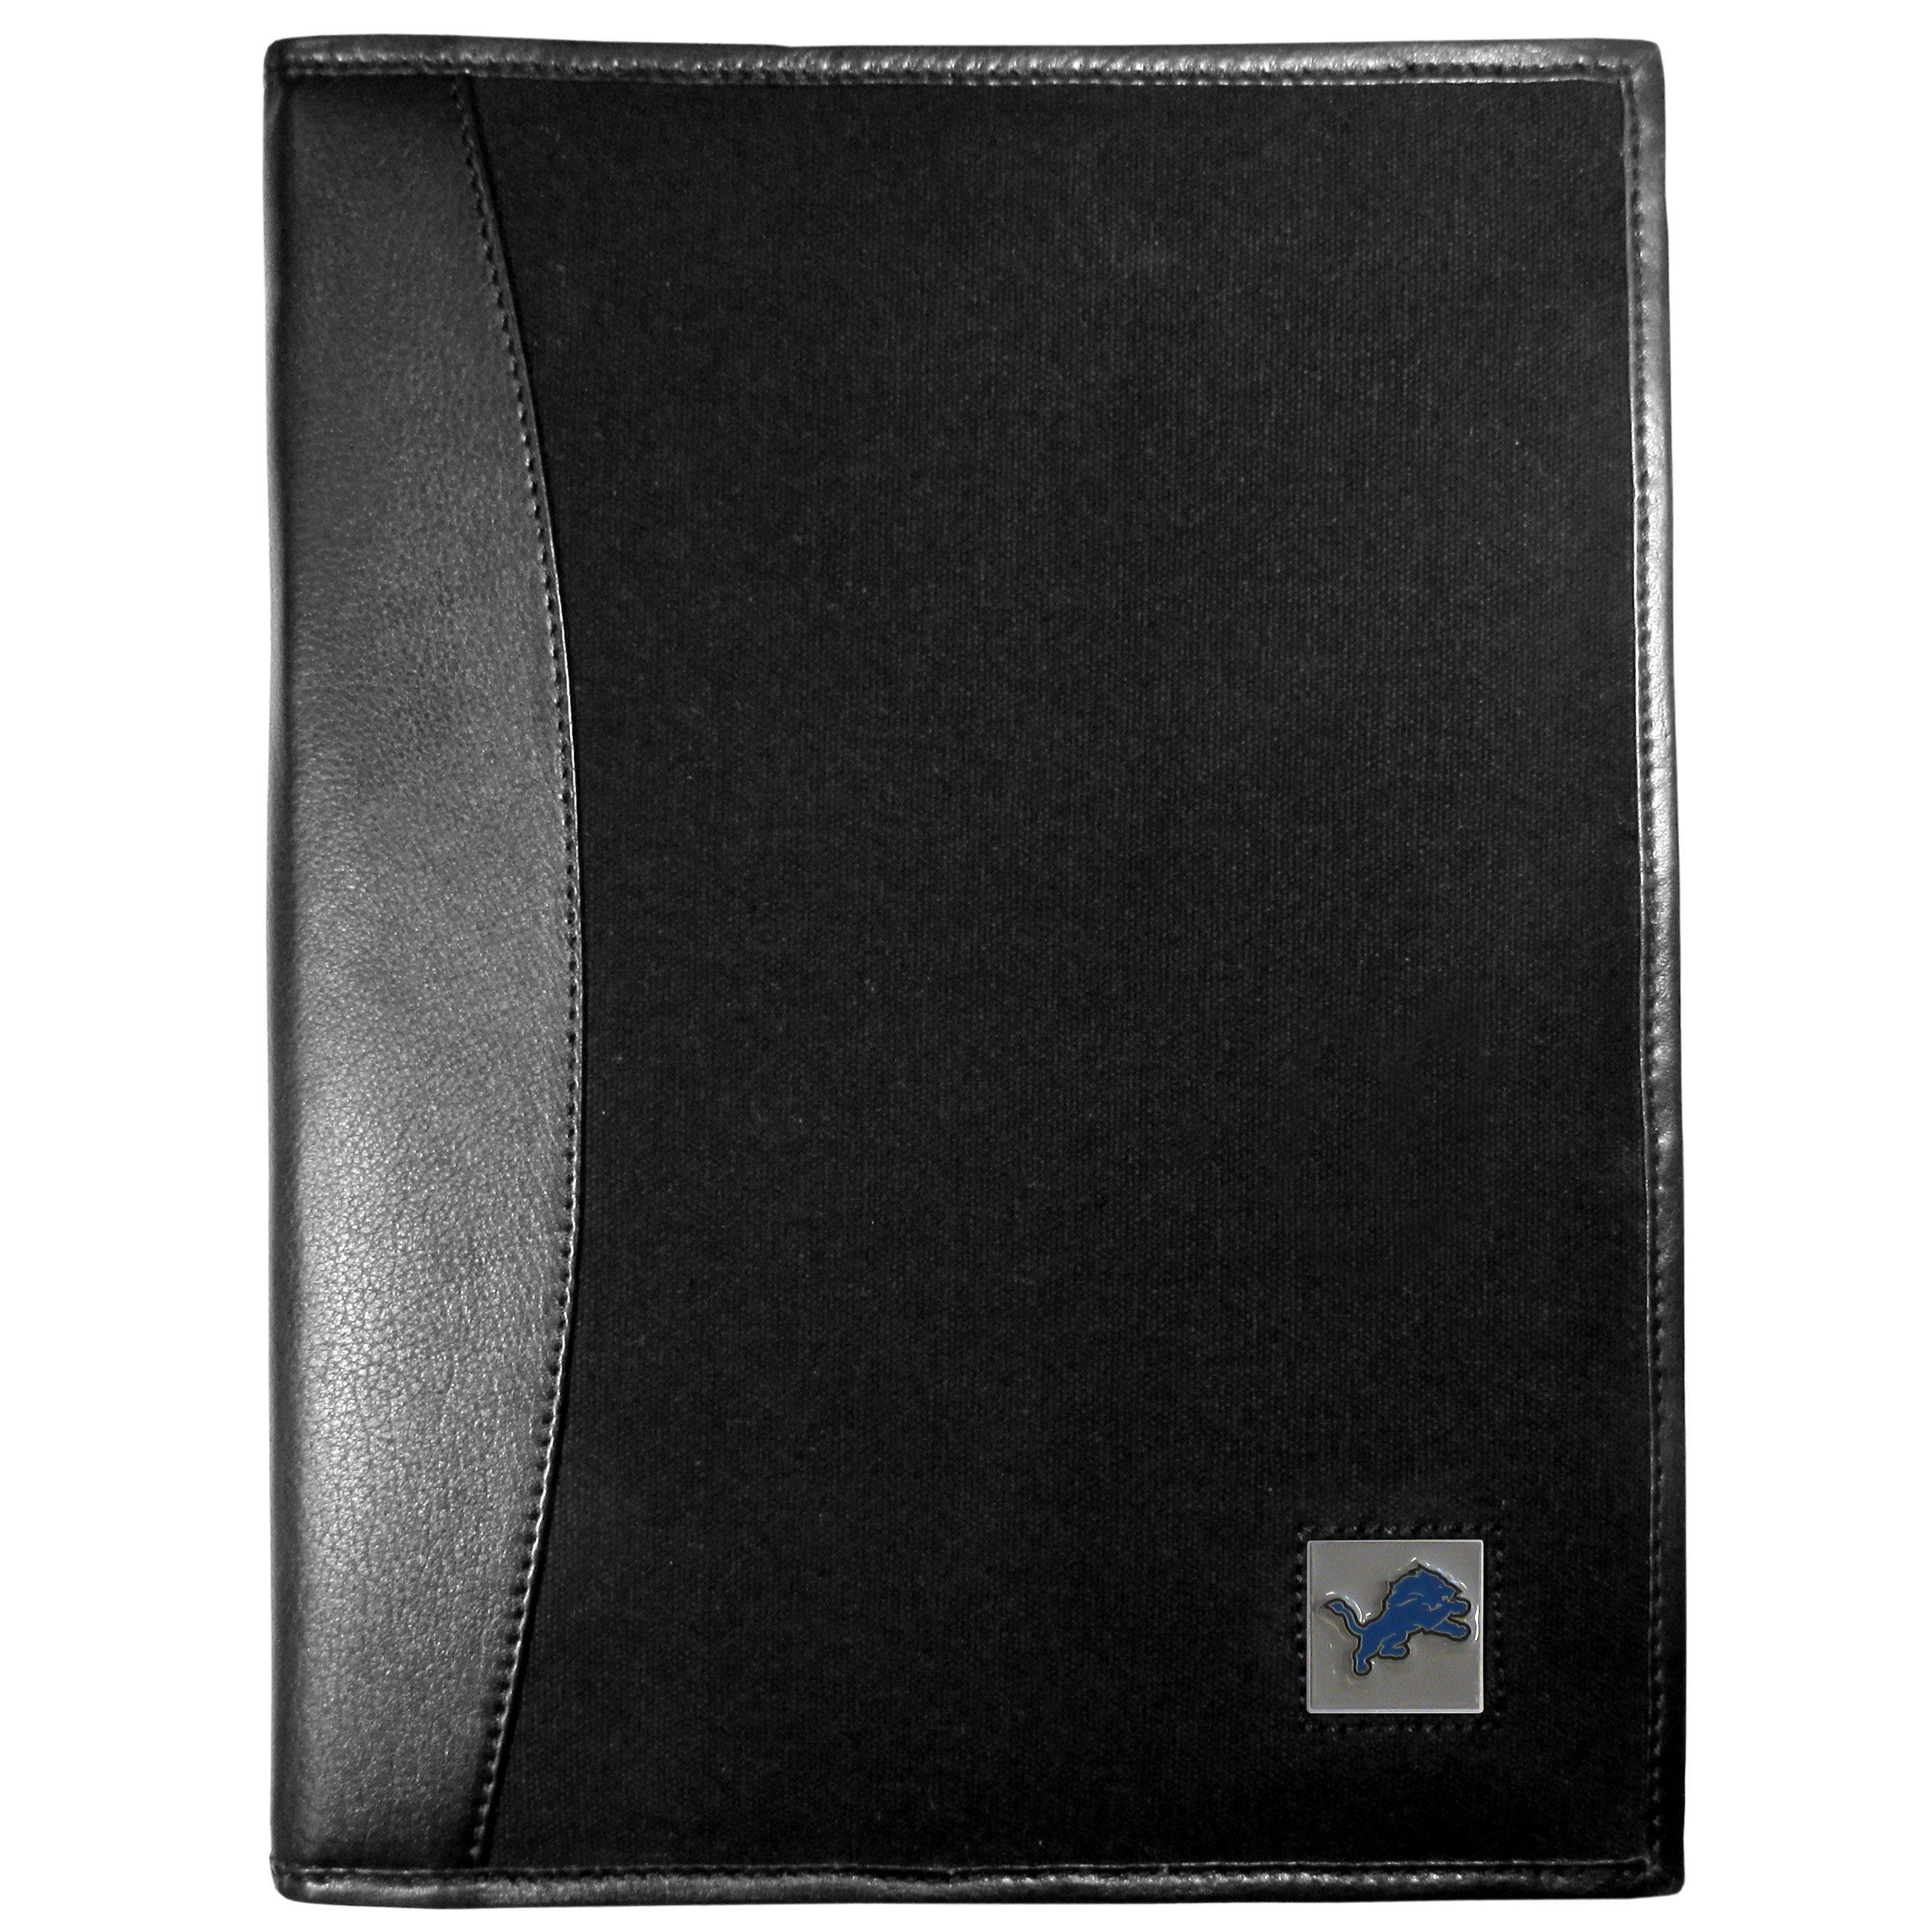 Detroit Lions Leather and Canvas Padfolio - Our leather and canvas padfolio perfectly blends form and function. The attractive portfolio is bound in fine grain leather with an attractive canvas finish and the interior is a soft nylon. This high quality business accessory also features a fully cast metal Detroit Lions emblem that is subtly set in the corner of the organizer. It is packed with features like 6 card slots for badges, business cards, hotel keys or credit cards and ID with a large pocket for loose papers and a writing tablet slot making it a must-have for the professional on the go.